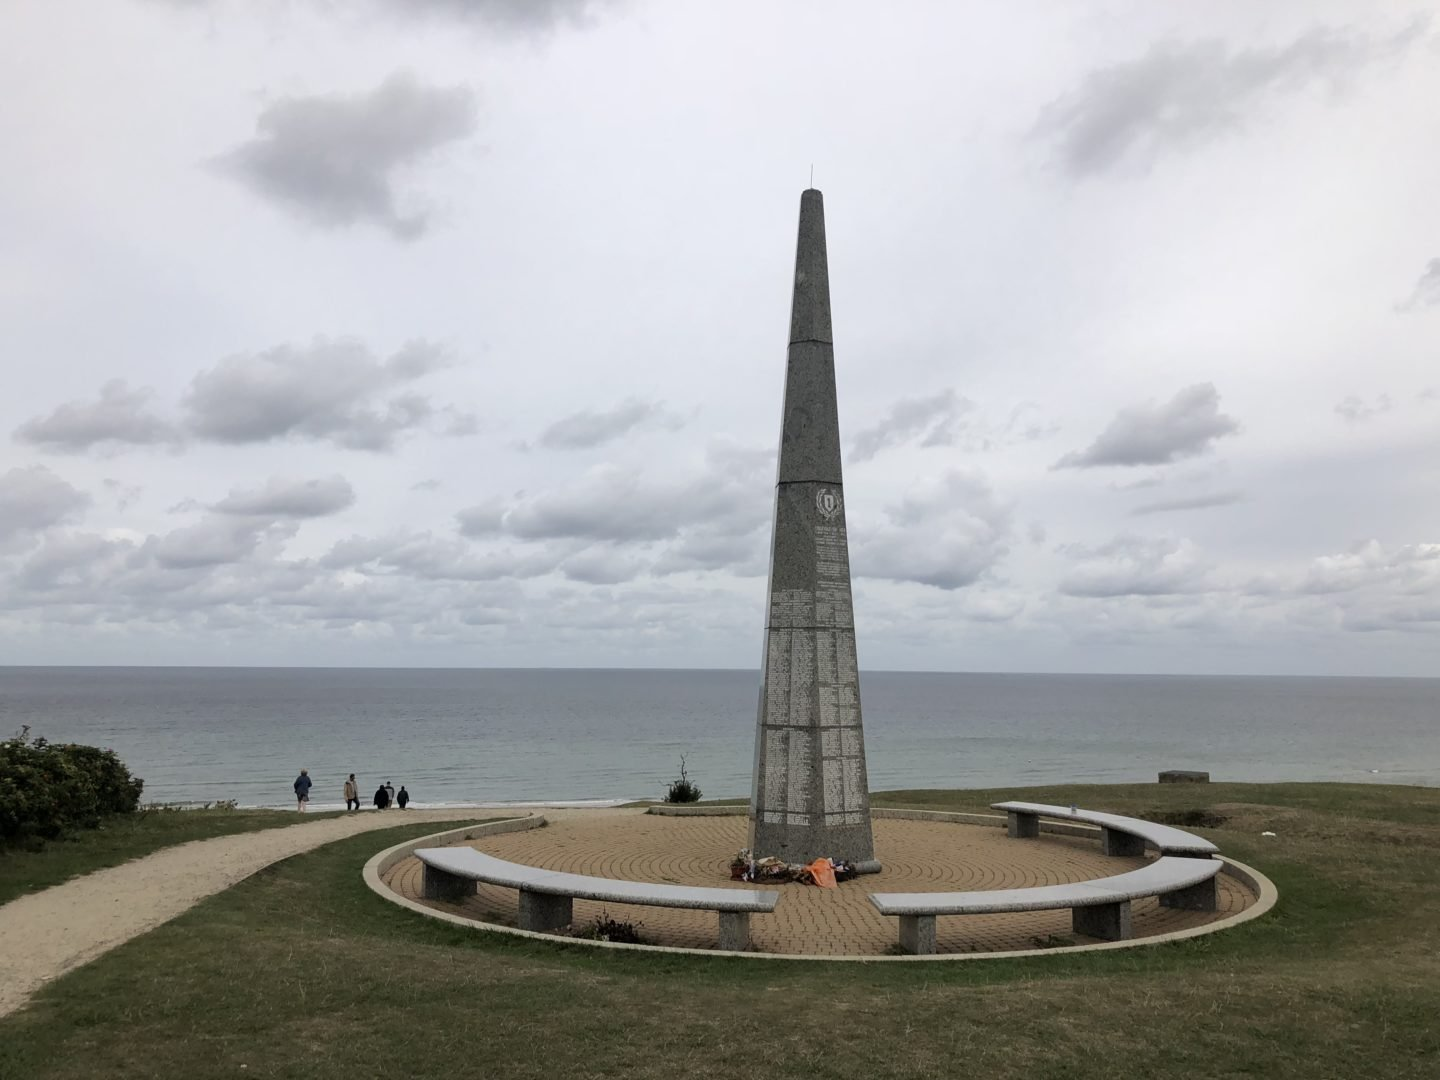 One Day Itinerary for the D day Normandy Beaches with Kids is the Memorial at Widerstandsnest 62. This german battery was a fortified and a partially bunkered German base during the Second World War.